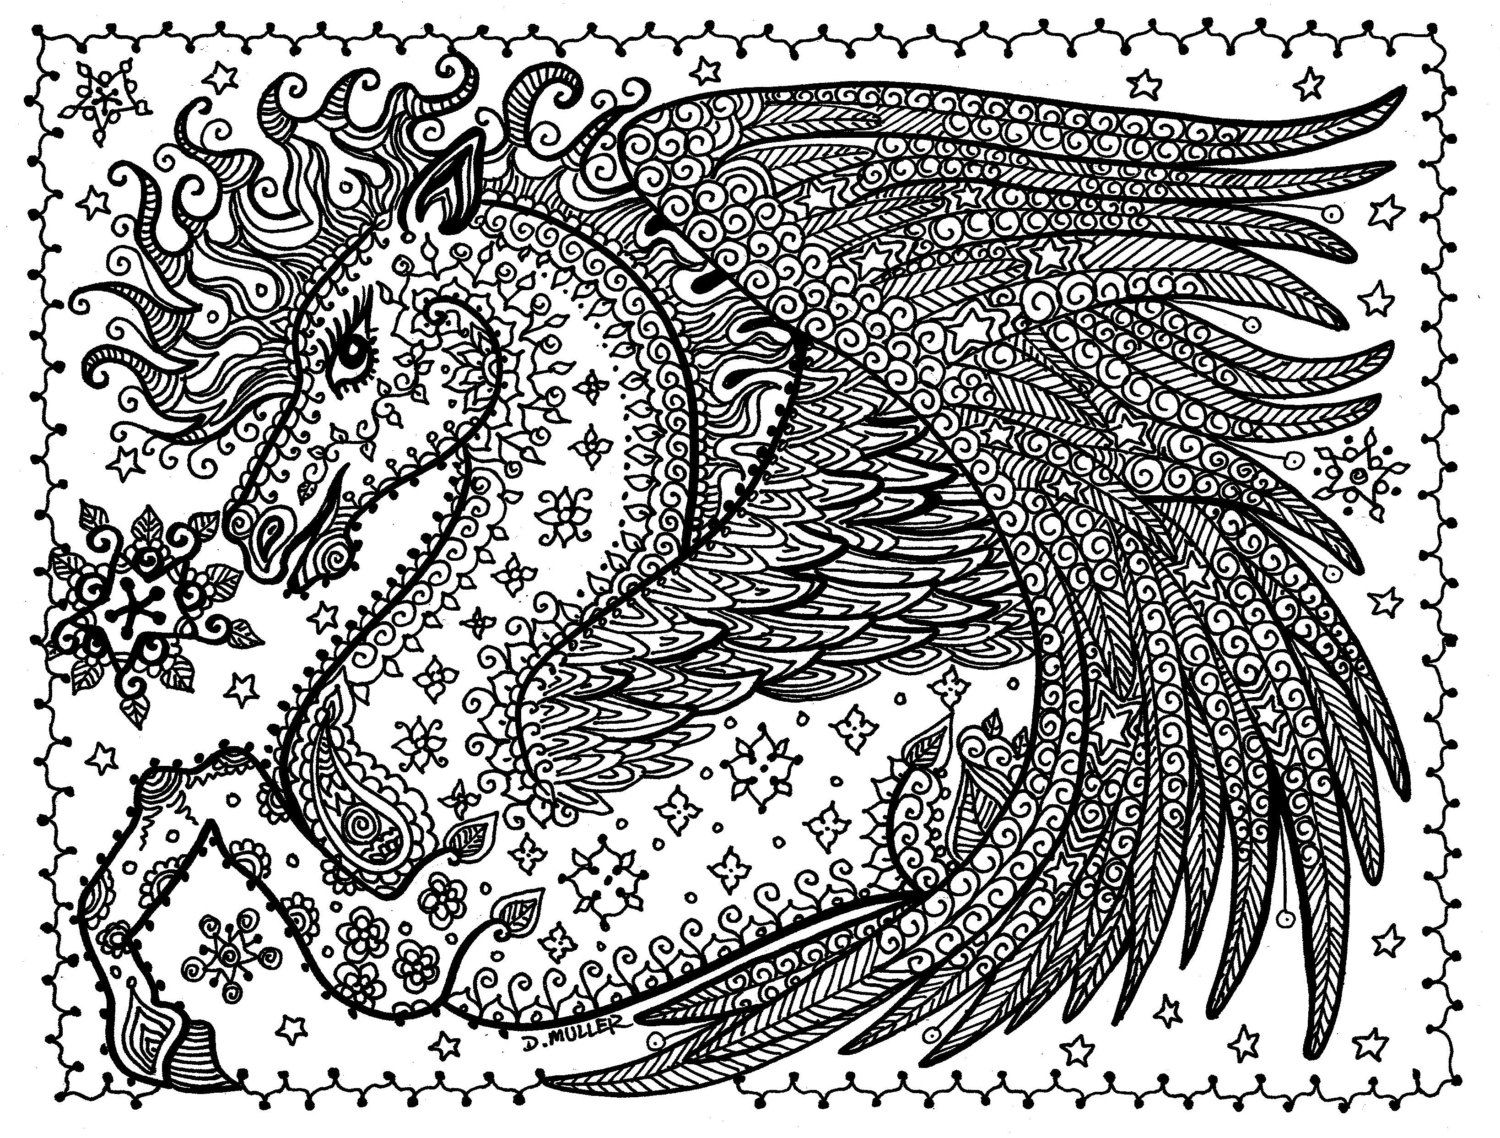 5 Pages Printable Coloring FANTASY To Color Dragon Pegasus Fairy Mermaid Sea Horse You Be The Artist Instant Download